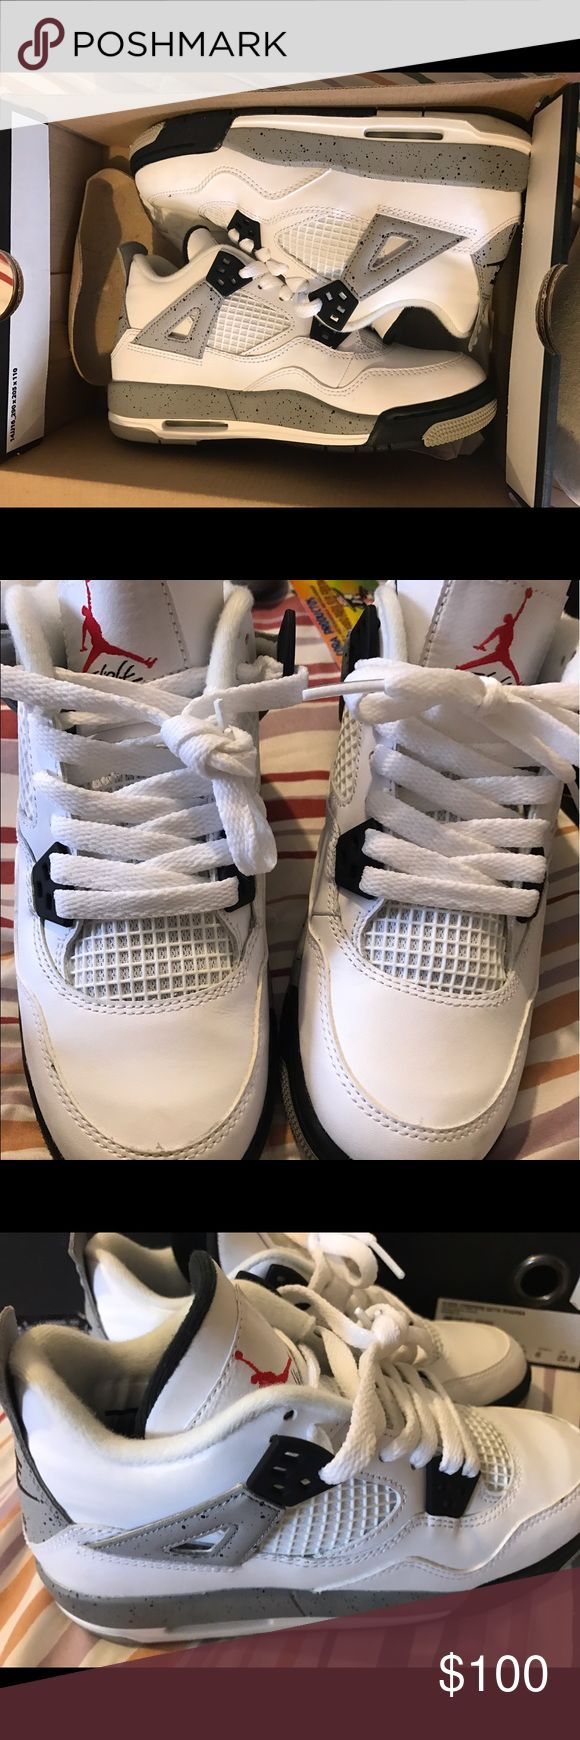 Cement Jordan 4s Still in their box , used only once. Size 3.5. Jordan Shoes Sneakers